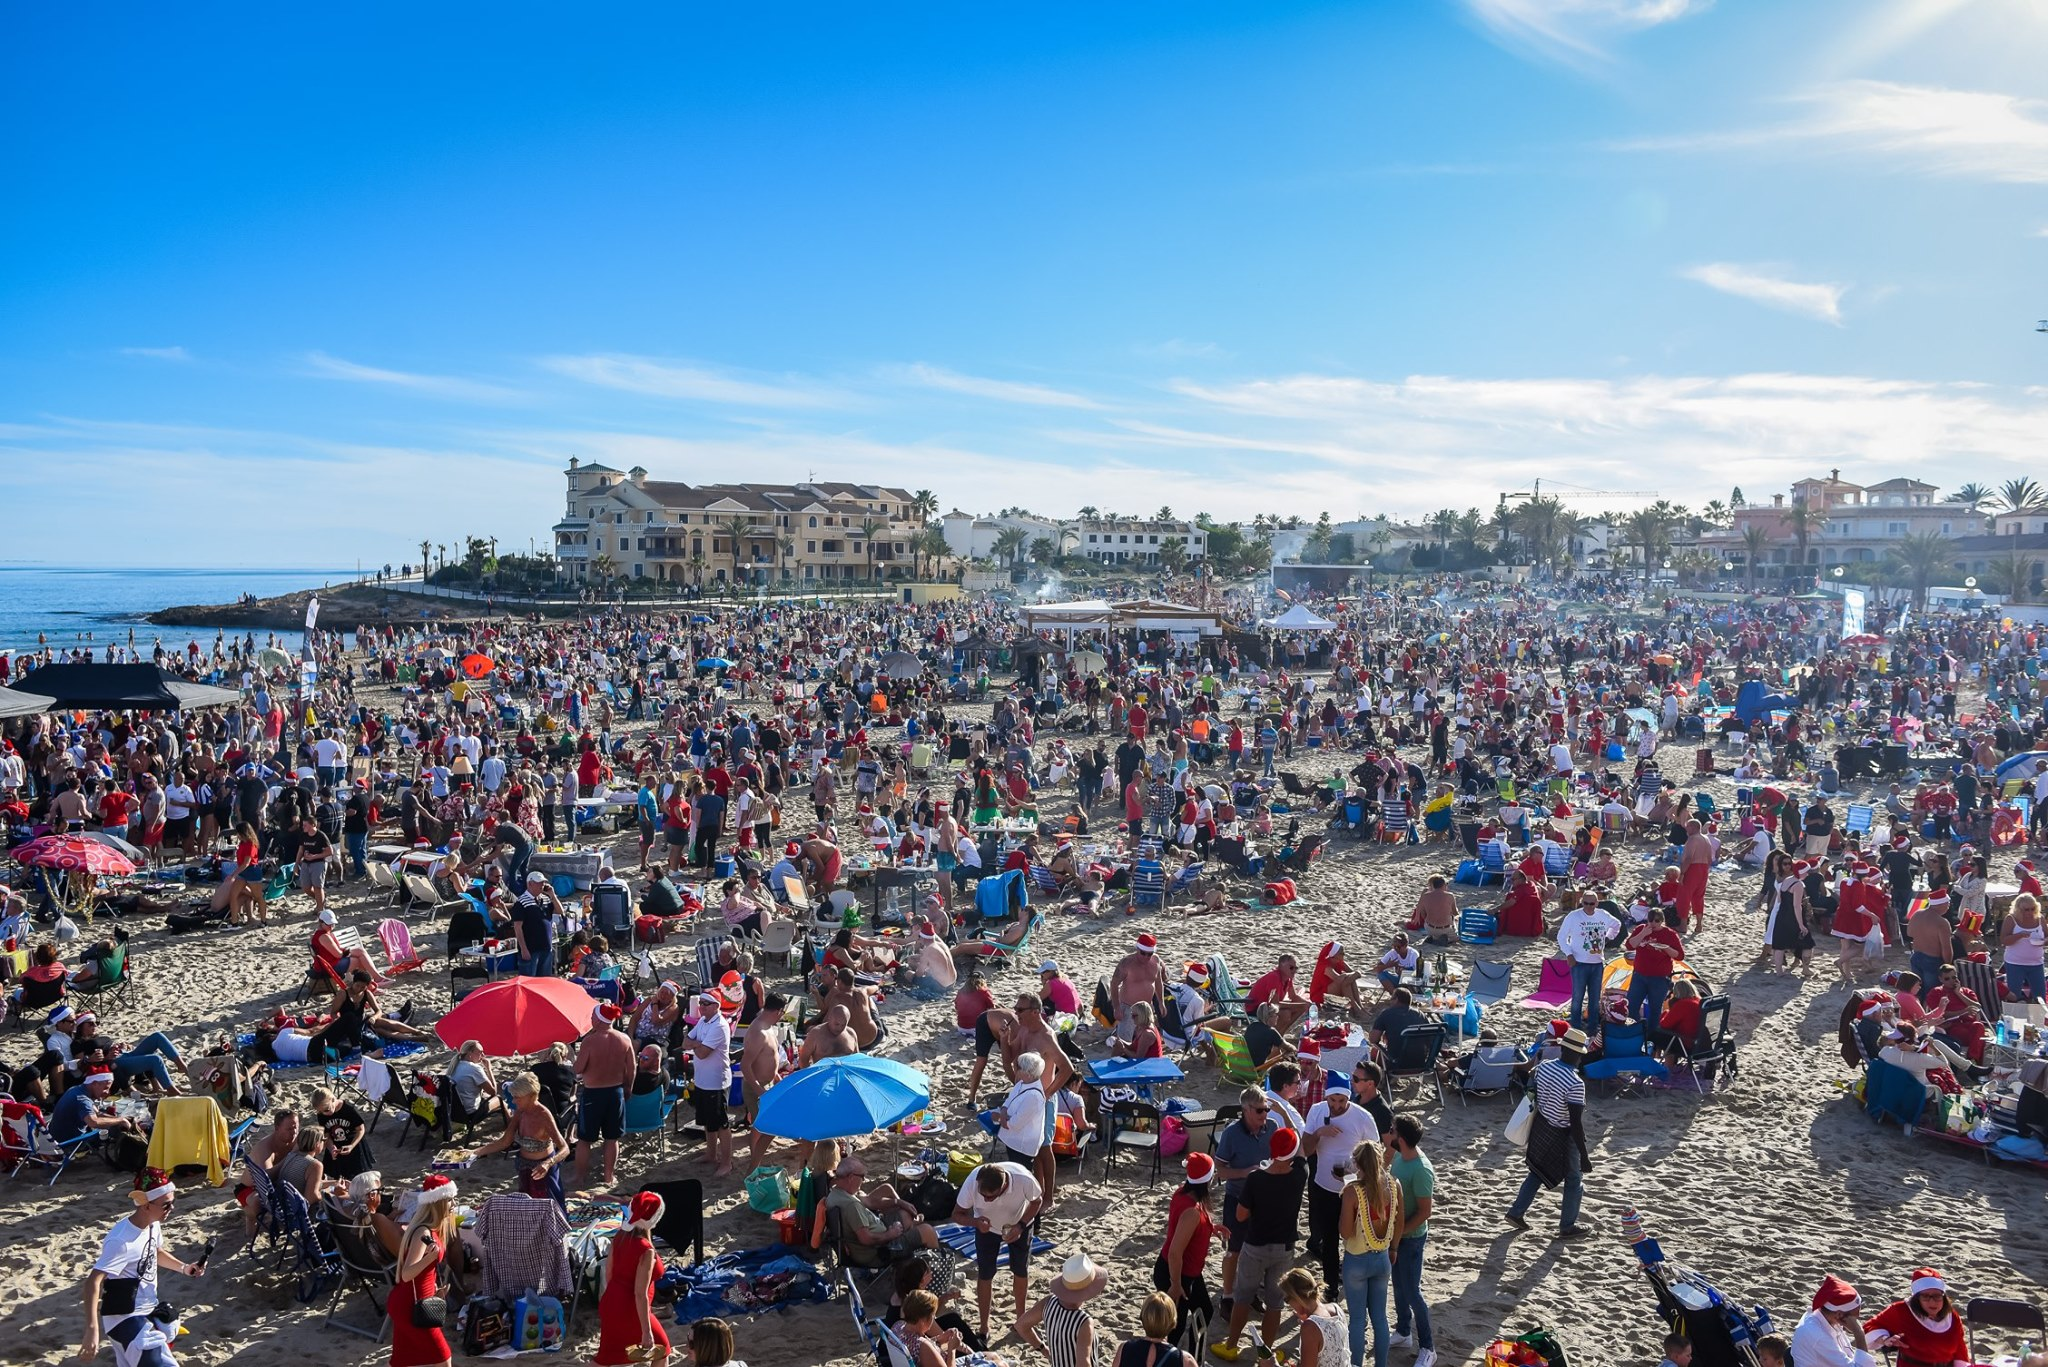 There was no space at all on Zenia Beach with the occasion continuing to grow year on year